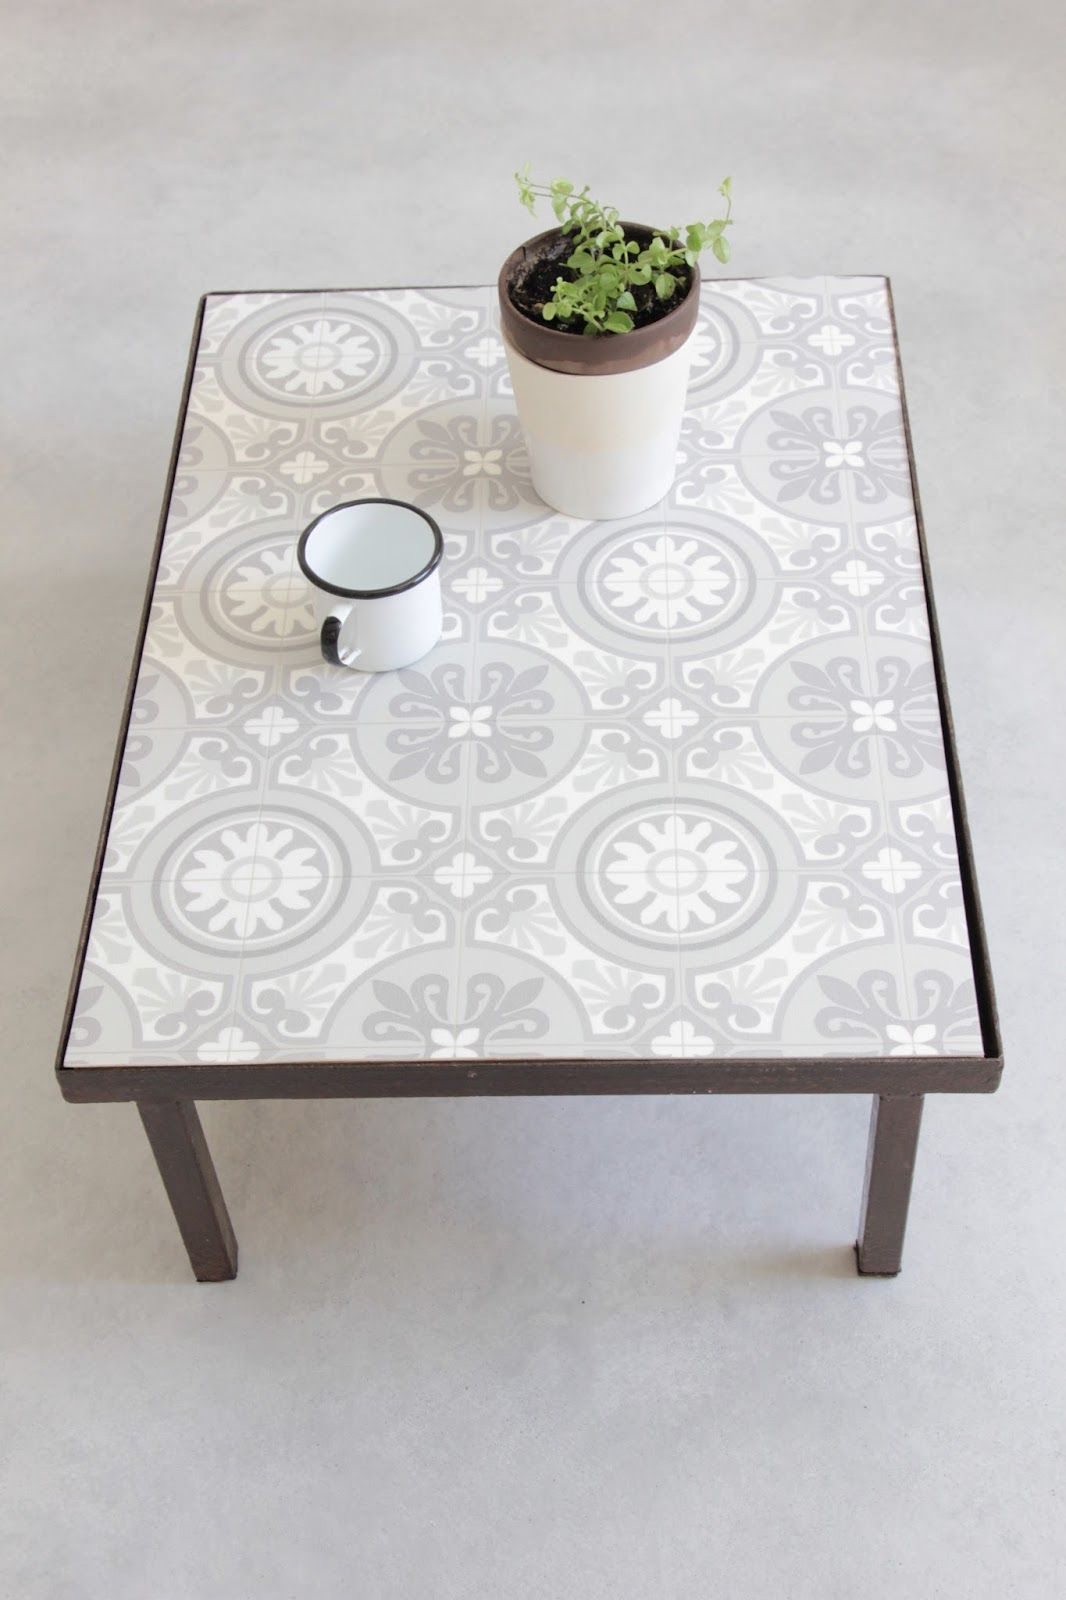 Ma table basse fa on carreaux de ciment diy carrelage de ciment ciment et vinyles - Carreau ciment adhesif ...